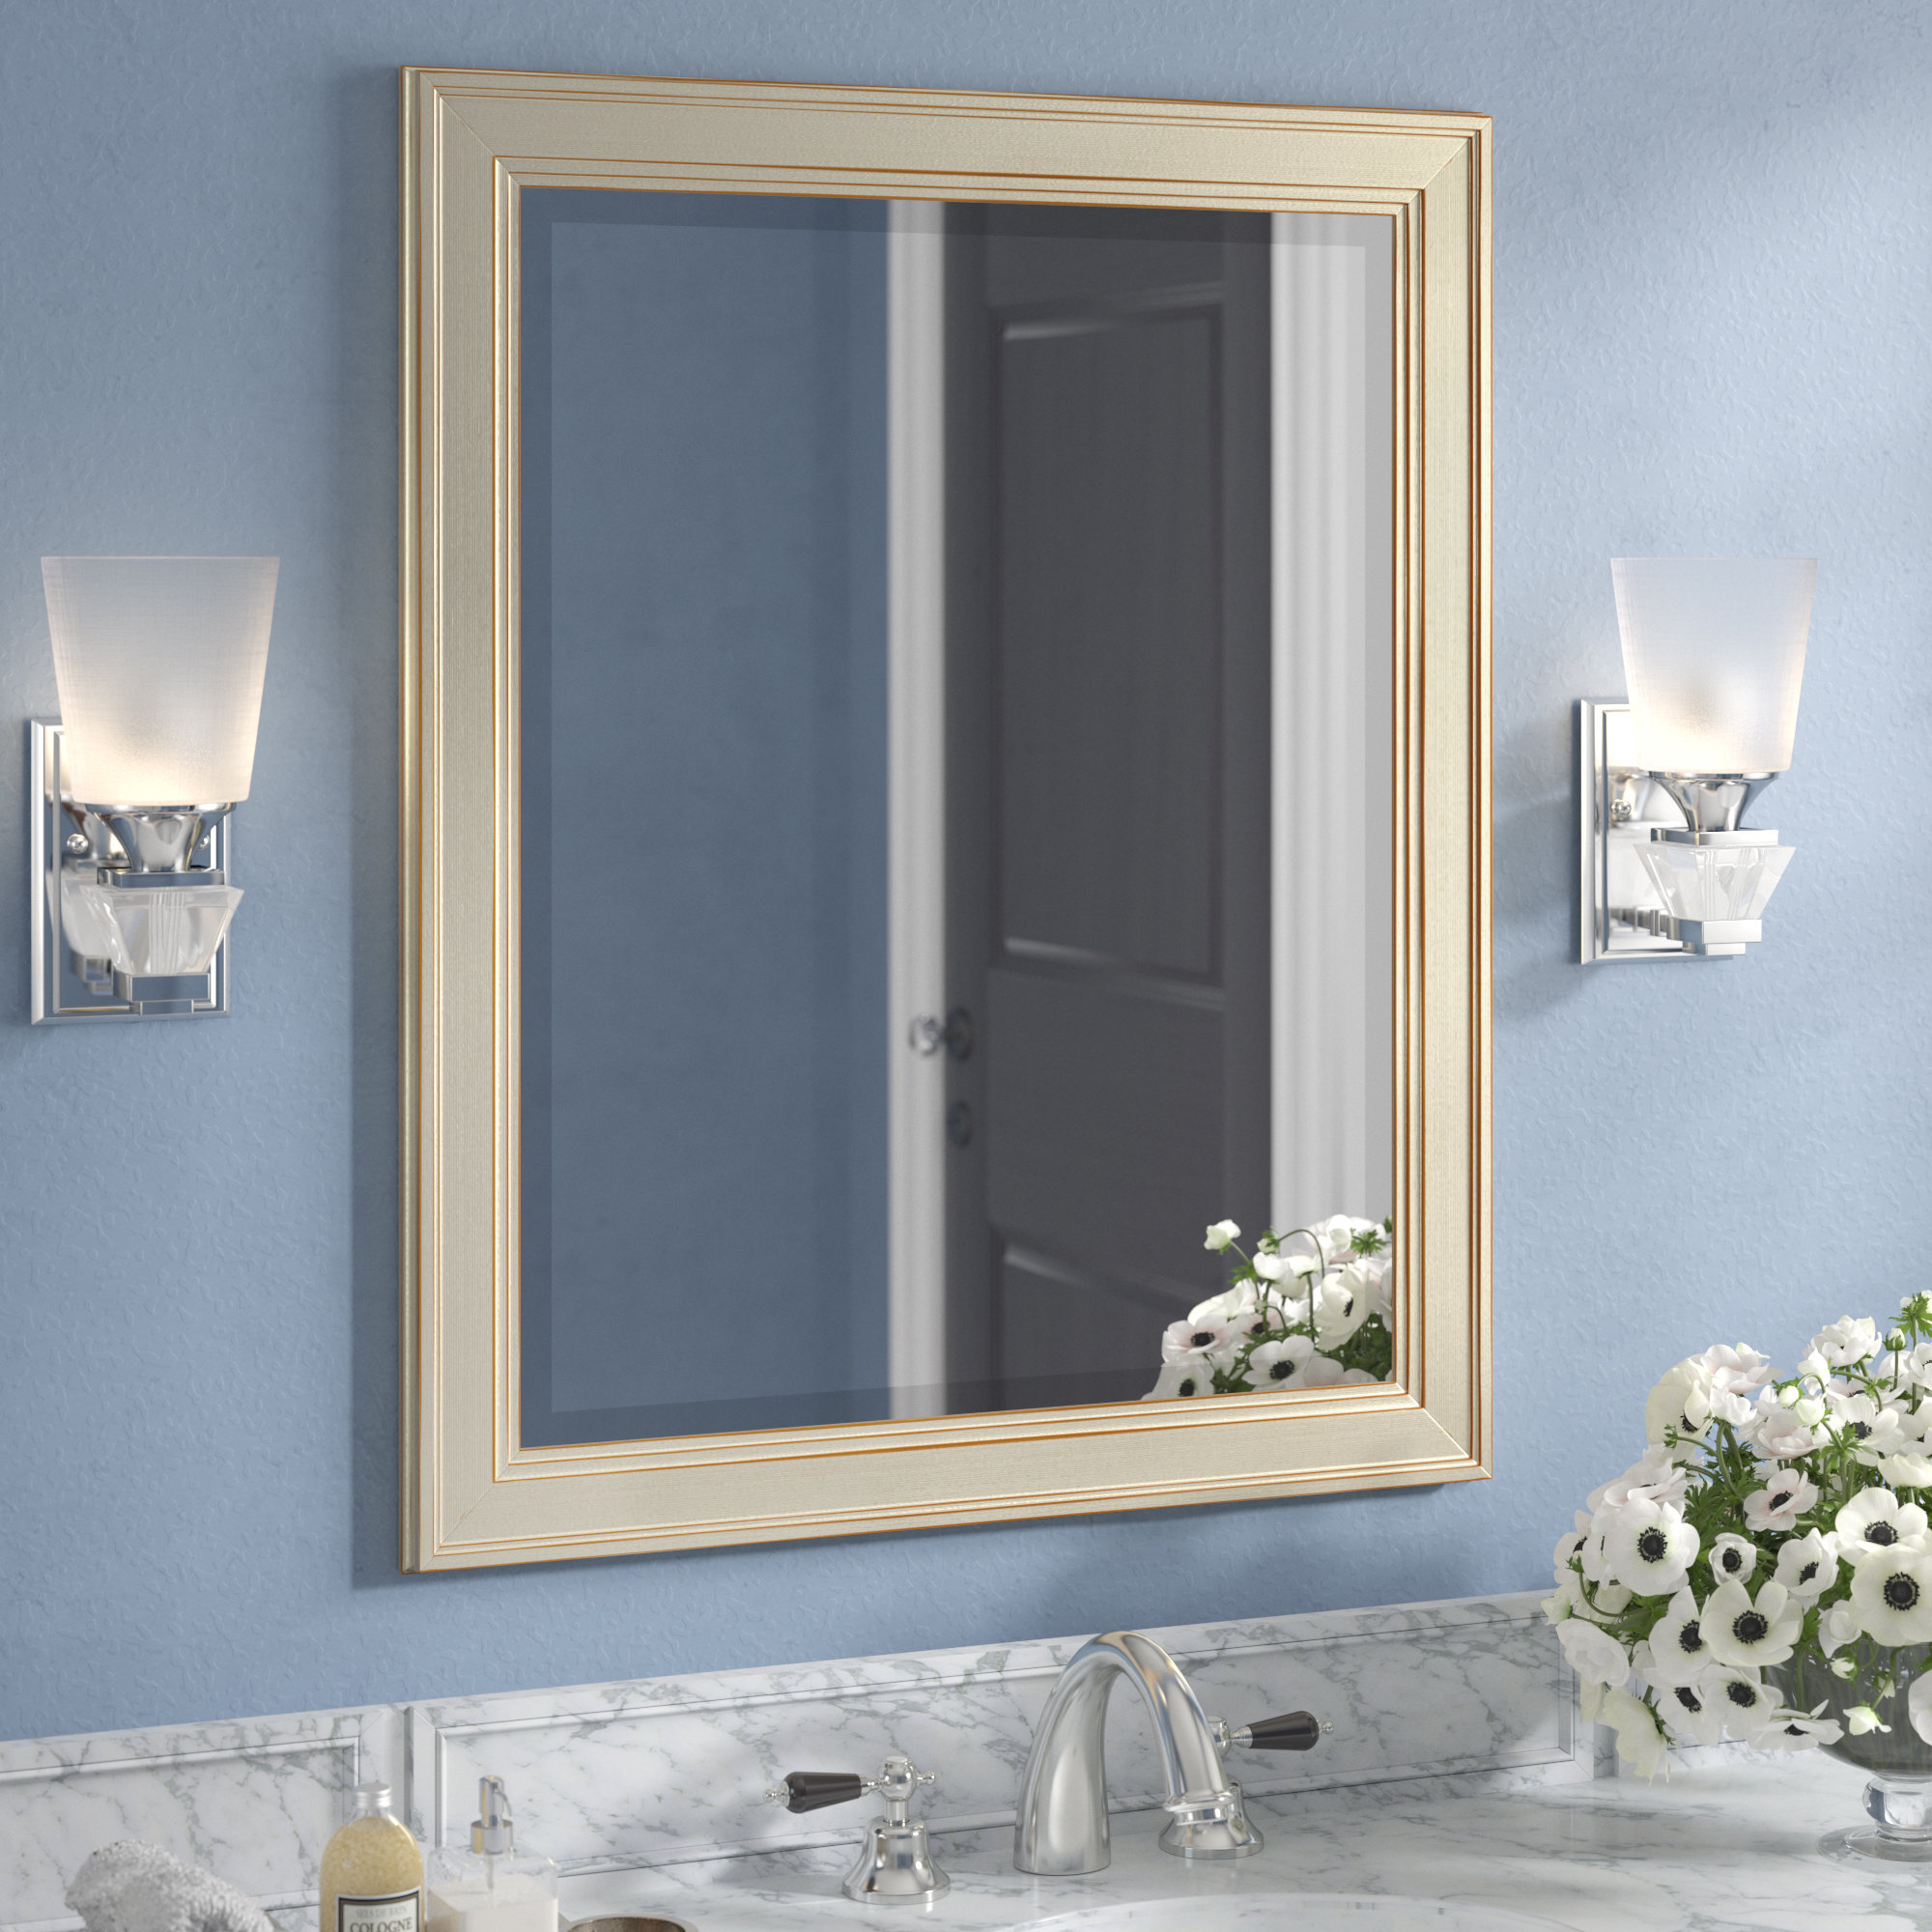 Salter Framed Rectangle Accent Mirror Regarding Rectangle Accent Mirrors (View 4 of 20)